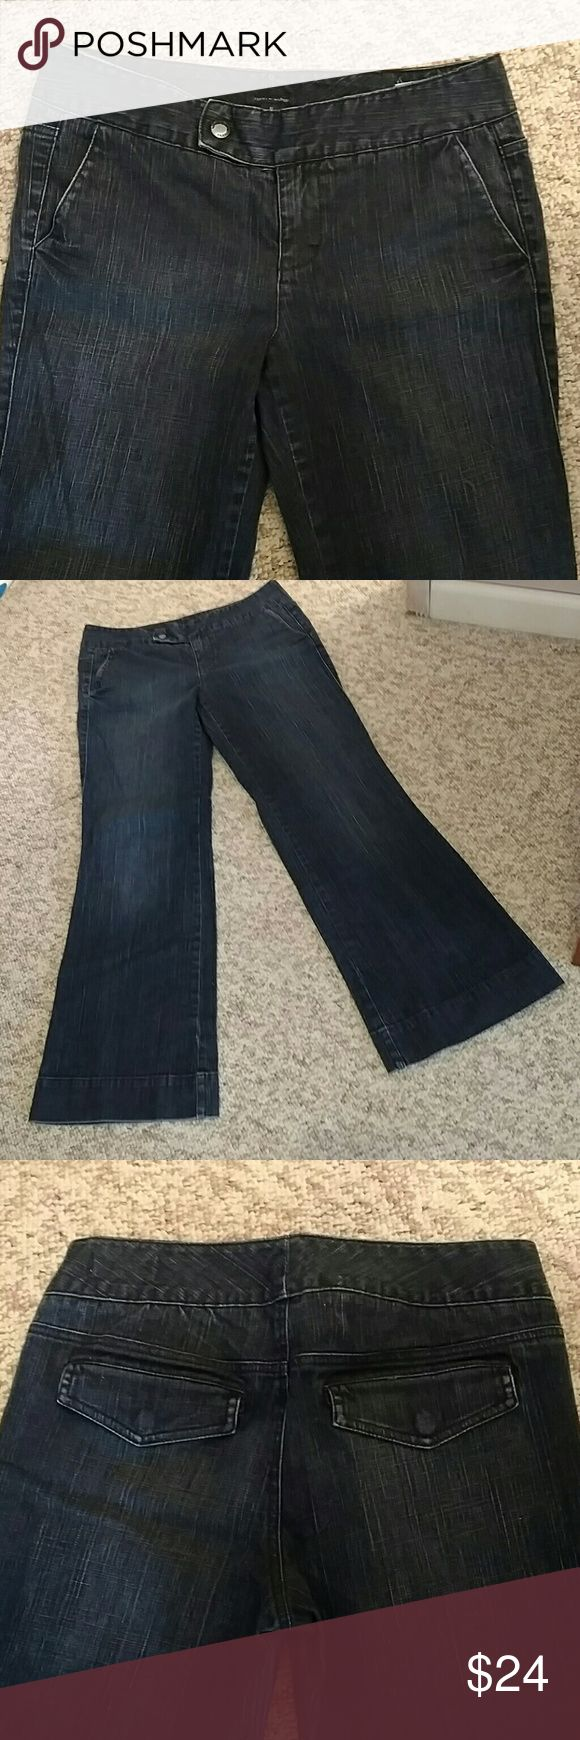 TOMMY HILFIGER JEANS AMERICAN SPLENDOR STYLE Design as Shown  Slight Flare Mid Rise  Great Condition !! Trouser Style Jeans Tommy Hilfiger Jeans Flare & Wide Leg